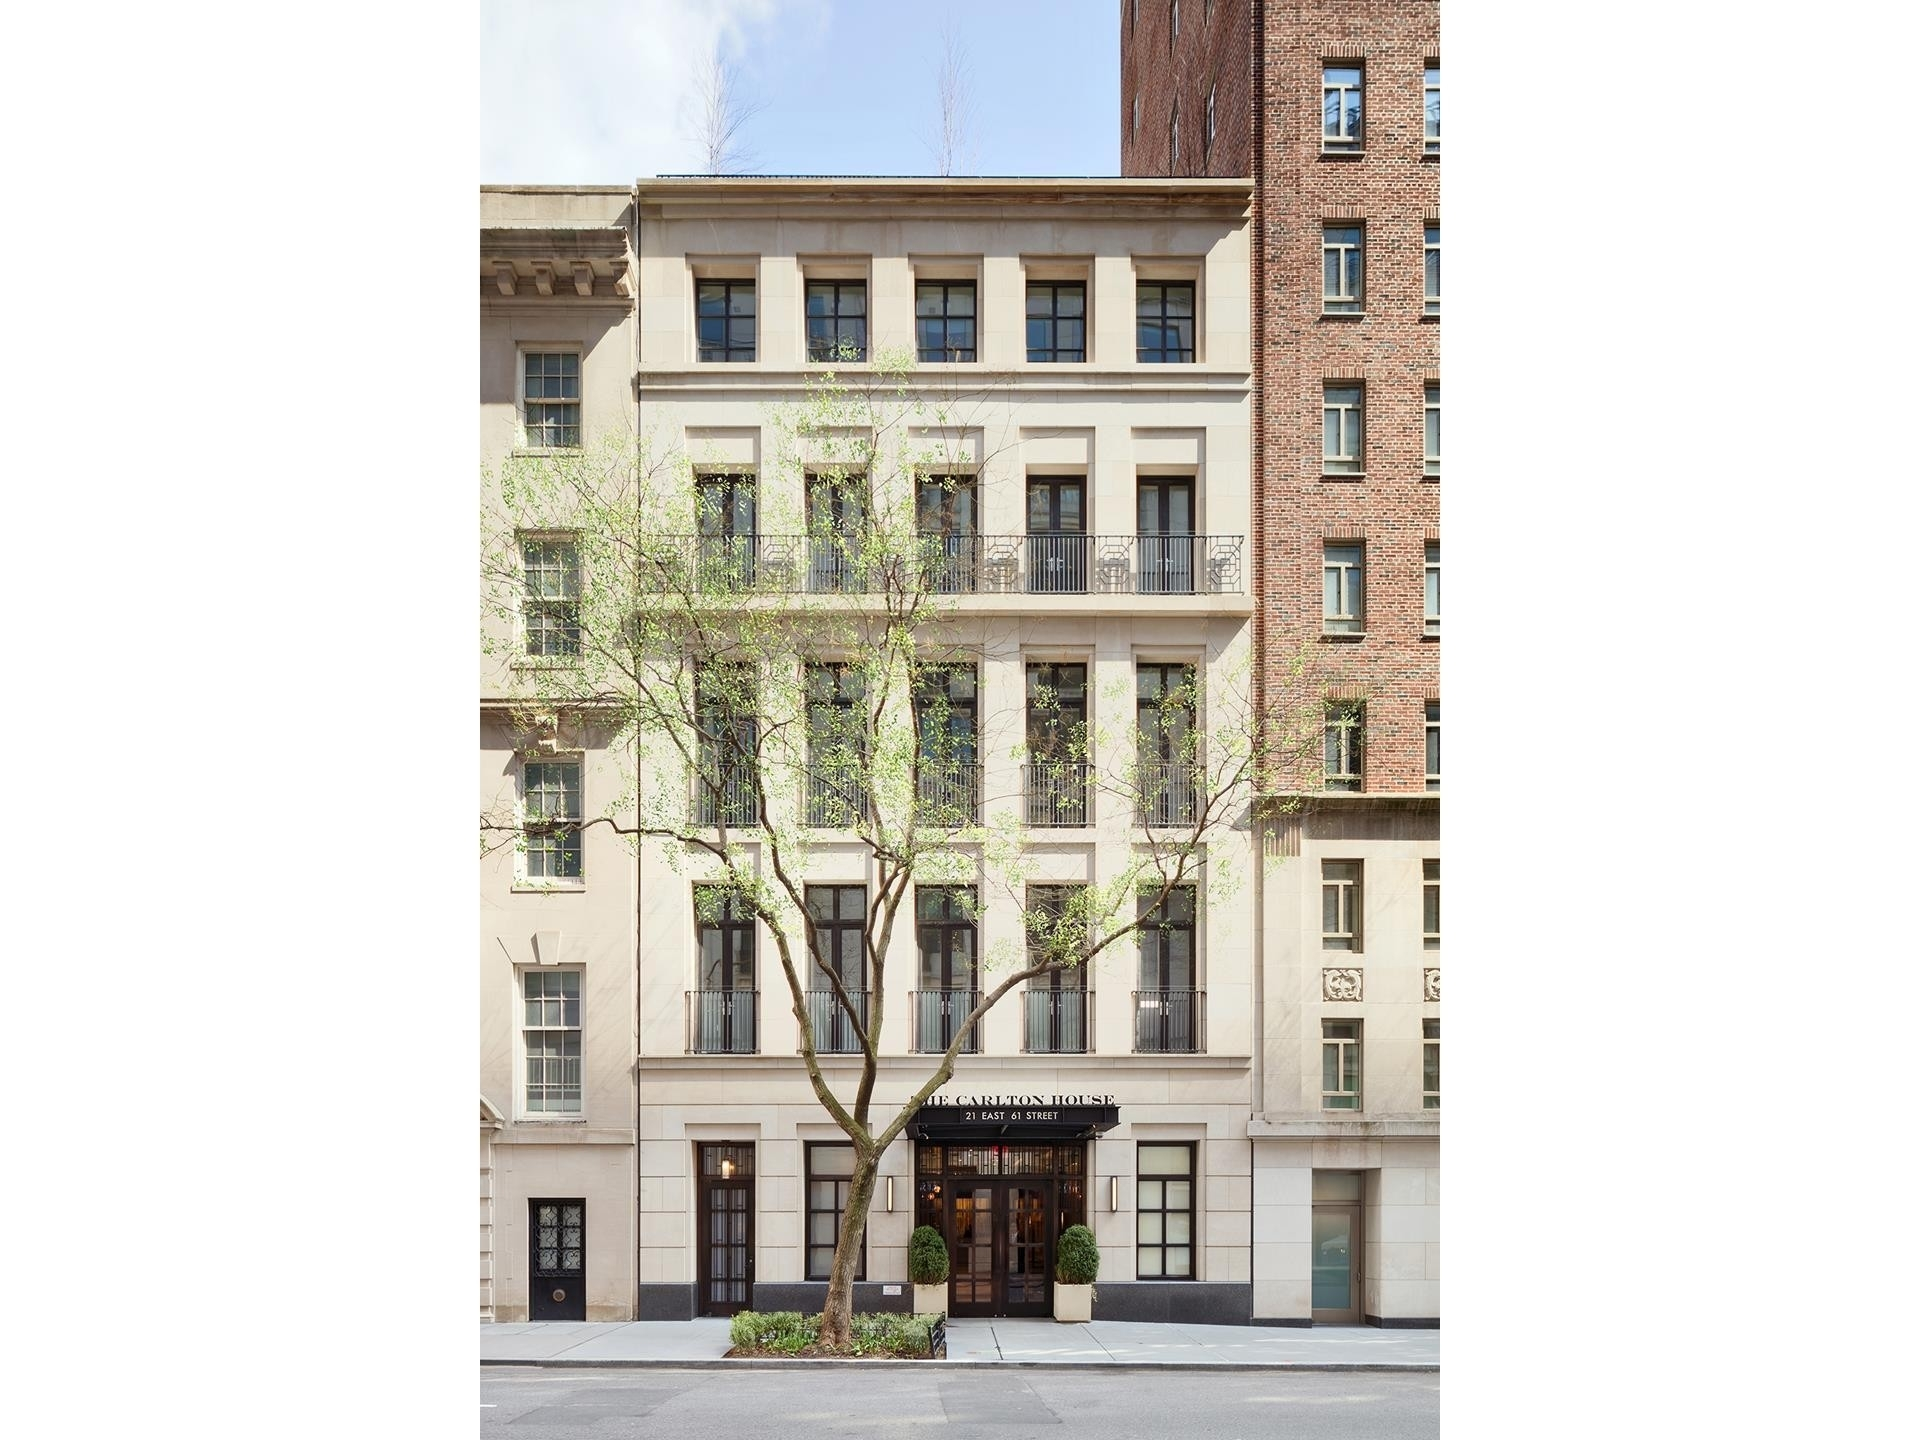 Co-op / Condo for Sale at Carlton House, 19 E 61ST ST , MANSION Lenox Hill, New York, NY 10065